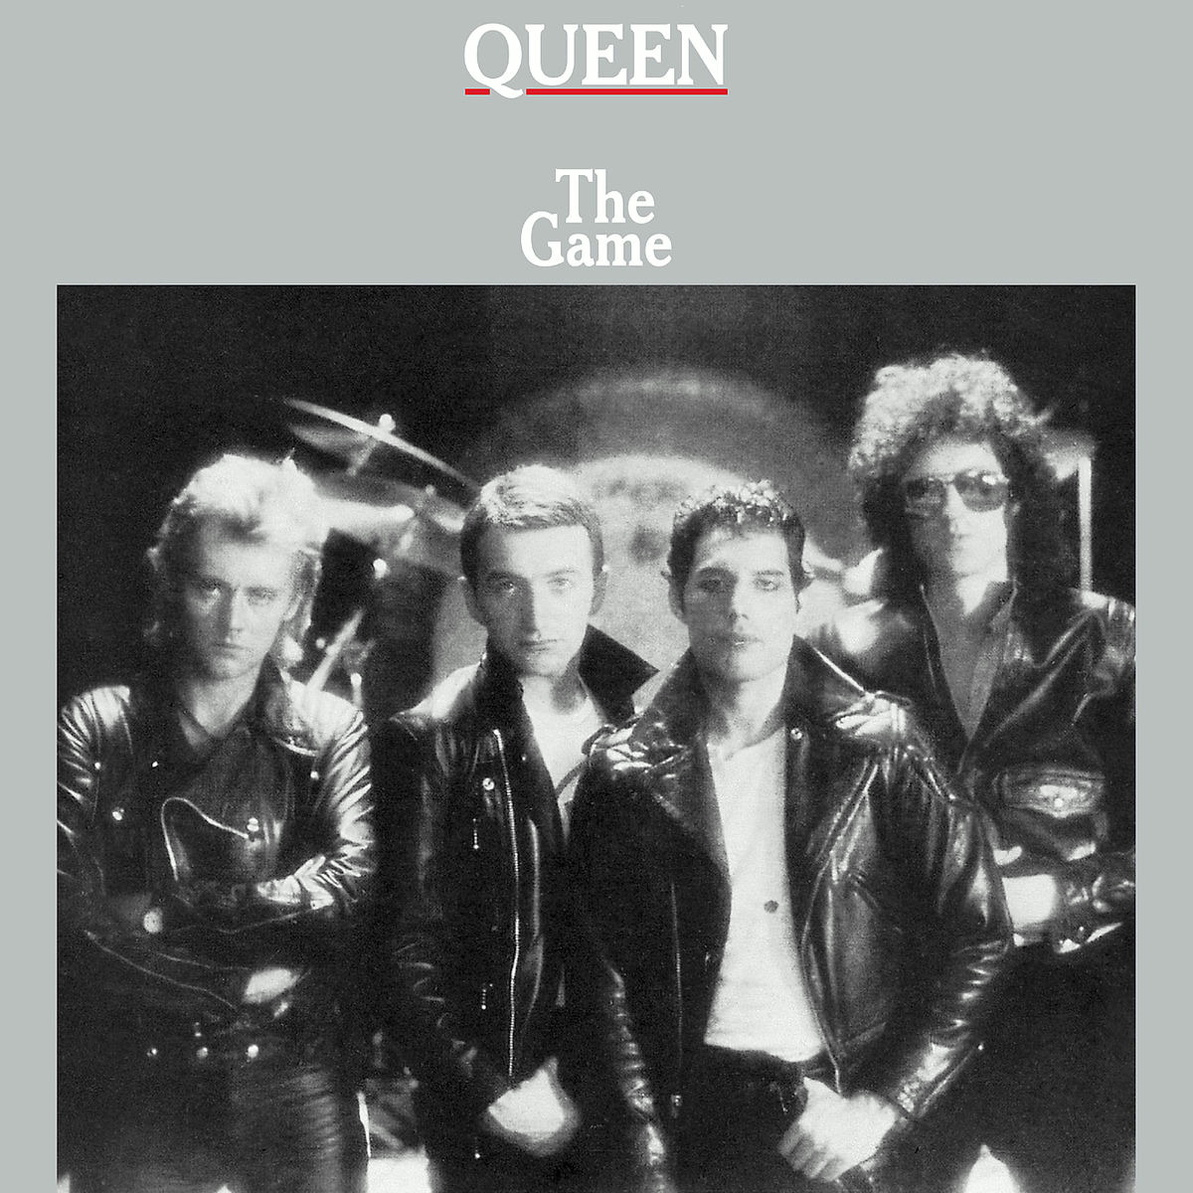 Queen - The Game (2011 Remastered)